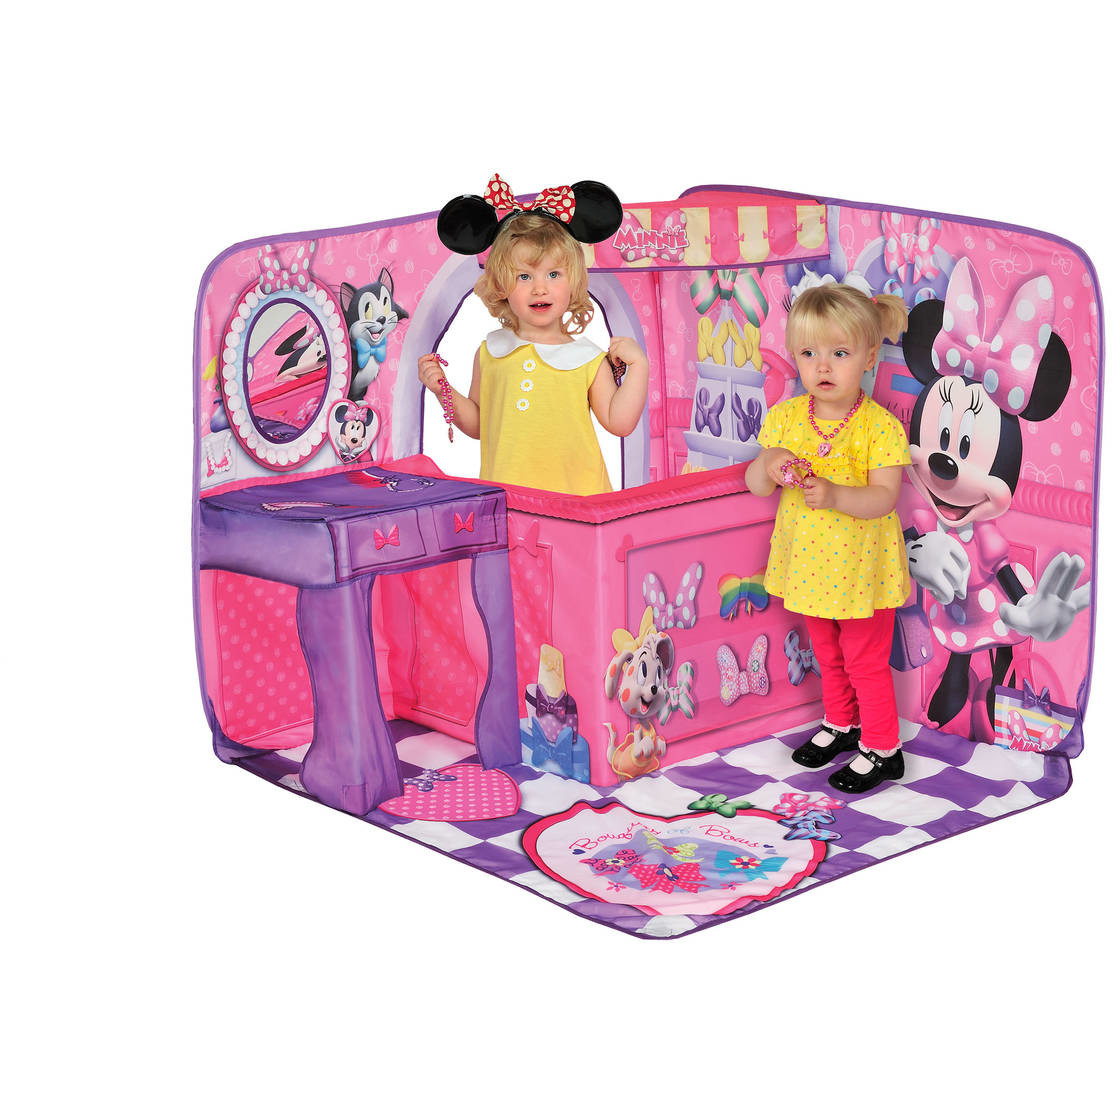 Cort 3d Minnie Bow Tique Playscape